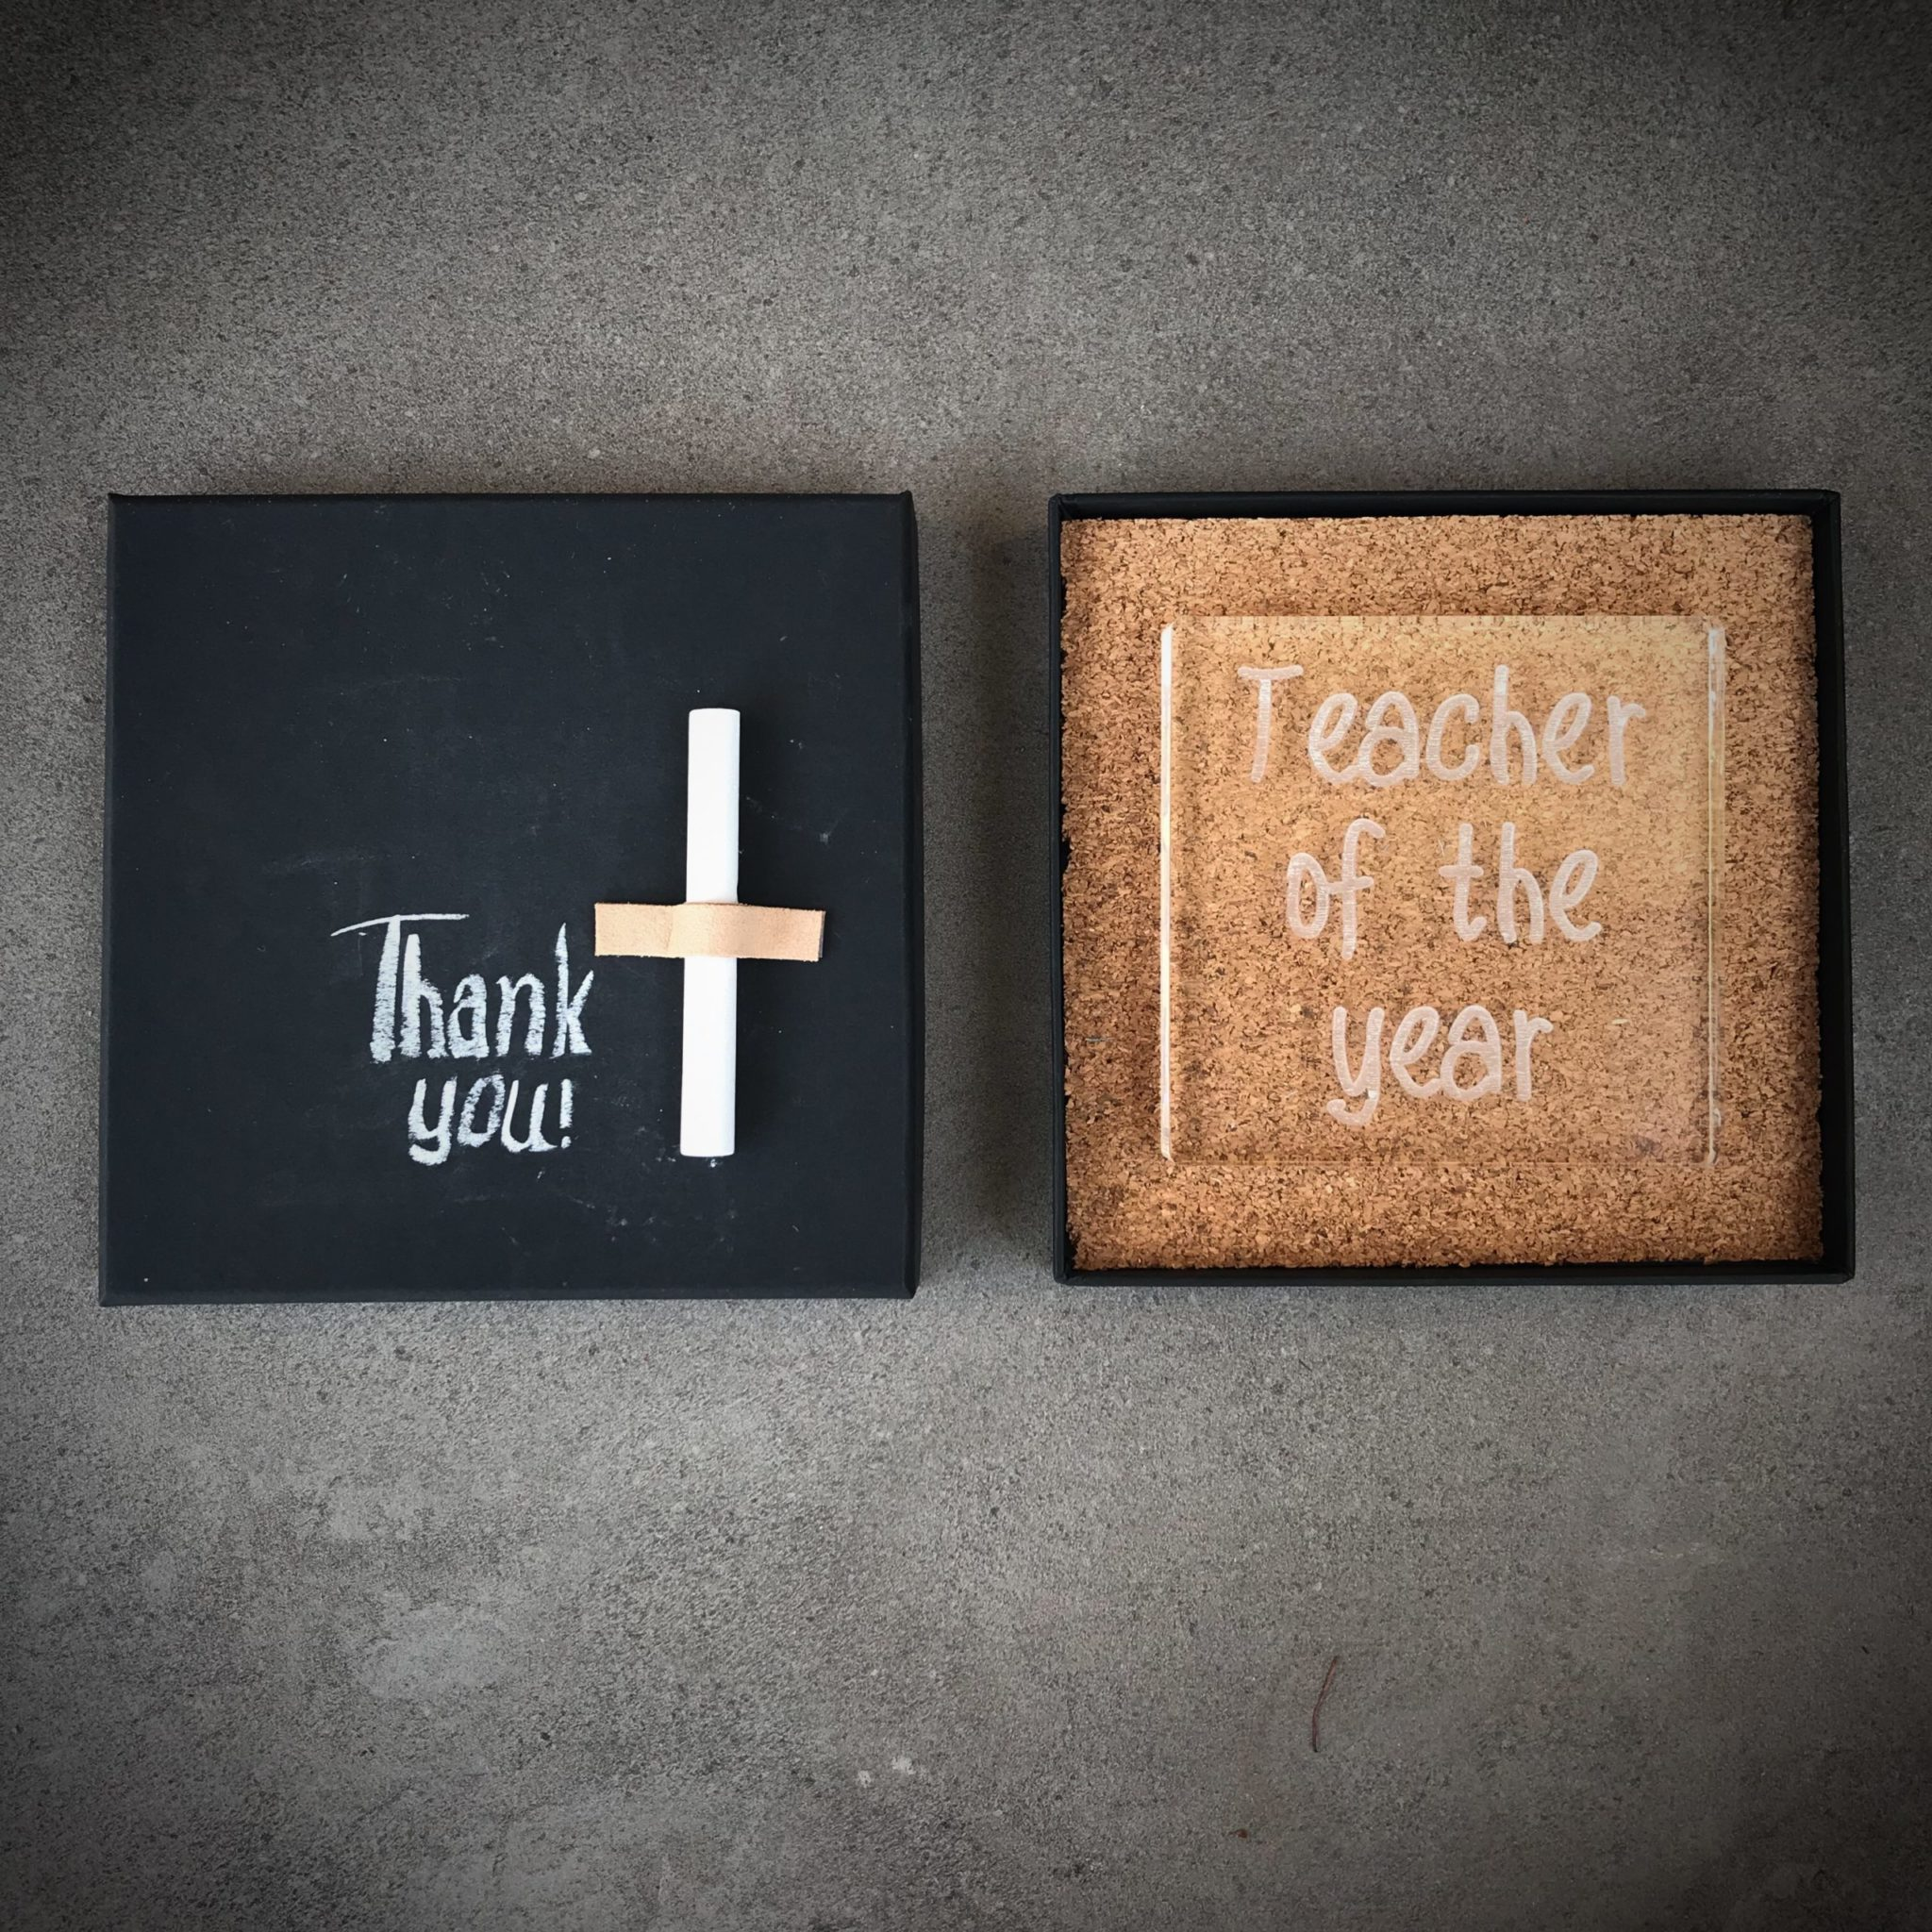 Teacher Of The Year-special occasion-plexi sign-packaging